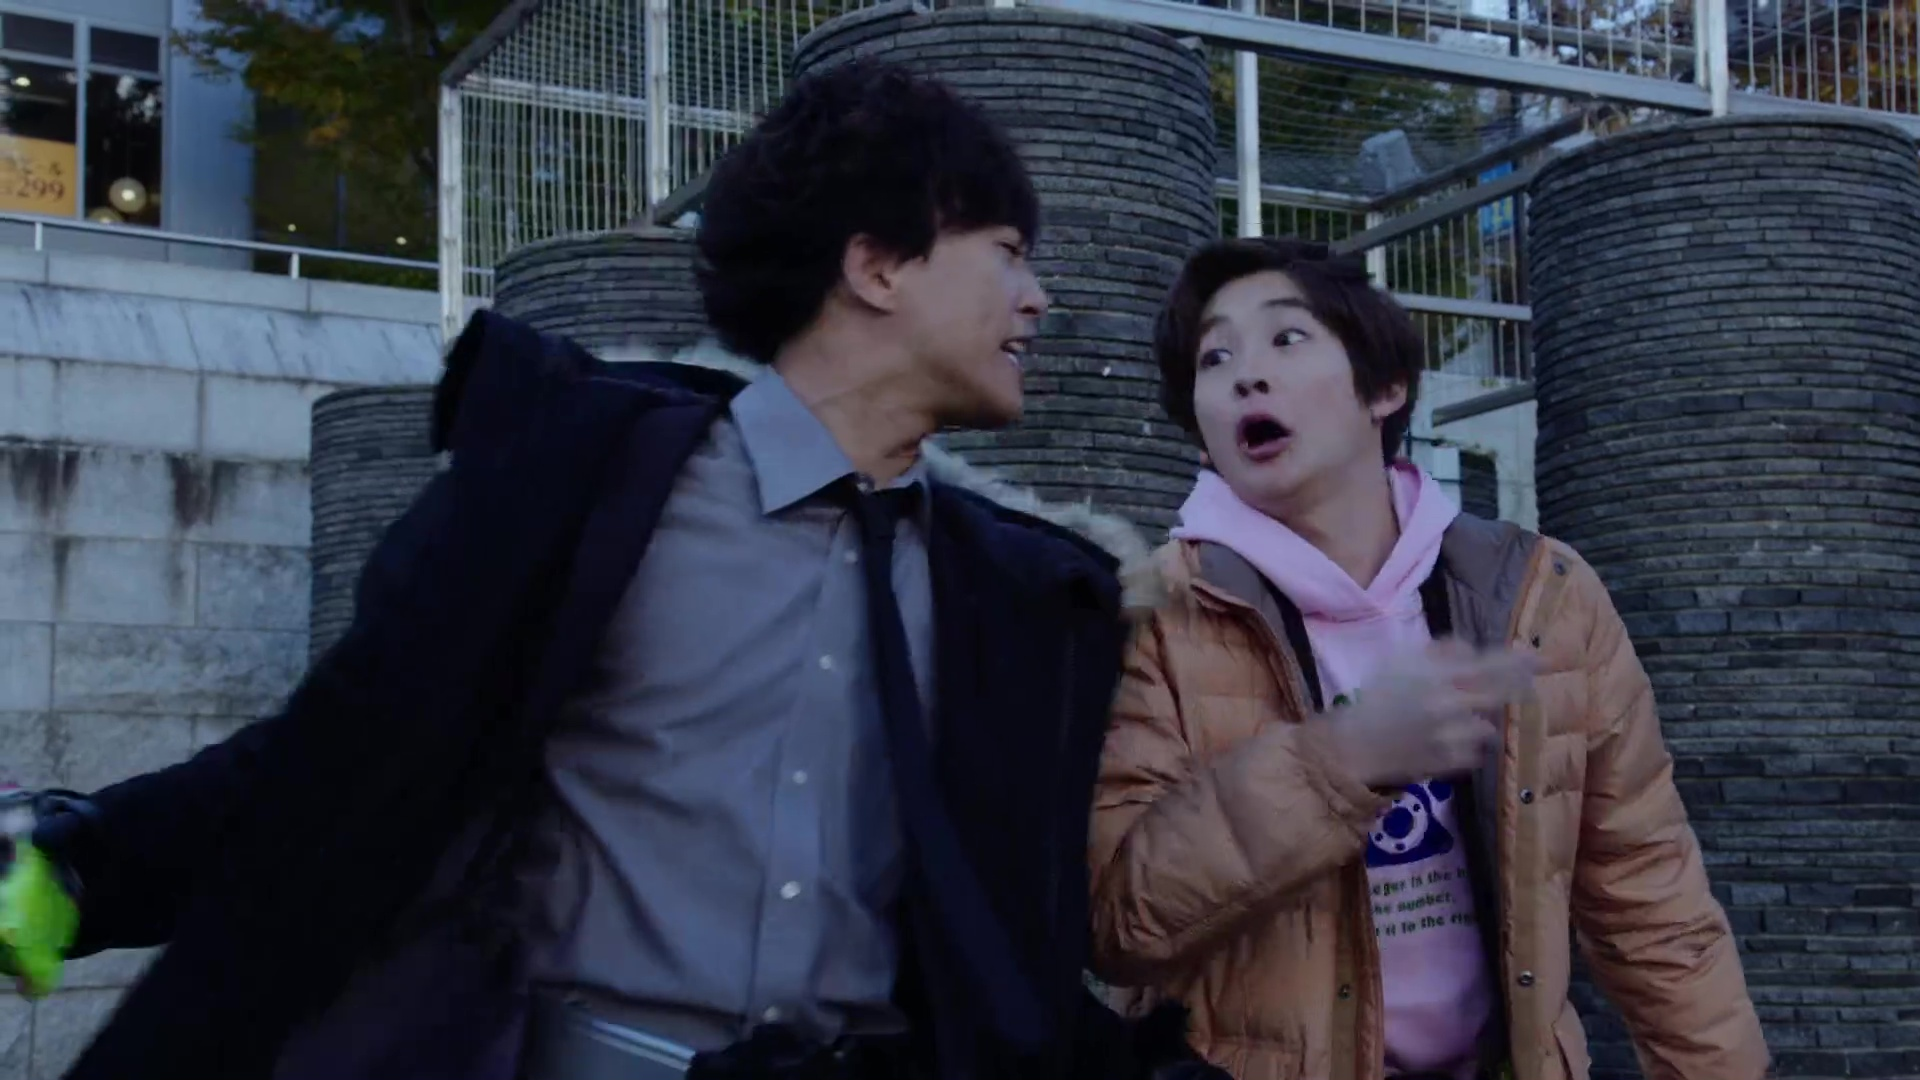 Kamen Rider Zero One Episode 16 Recap